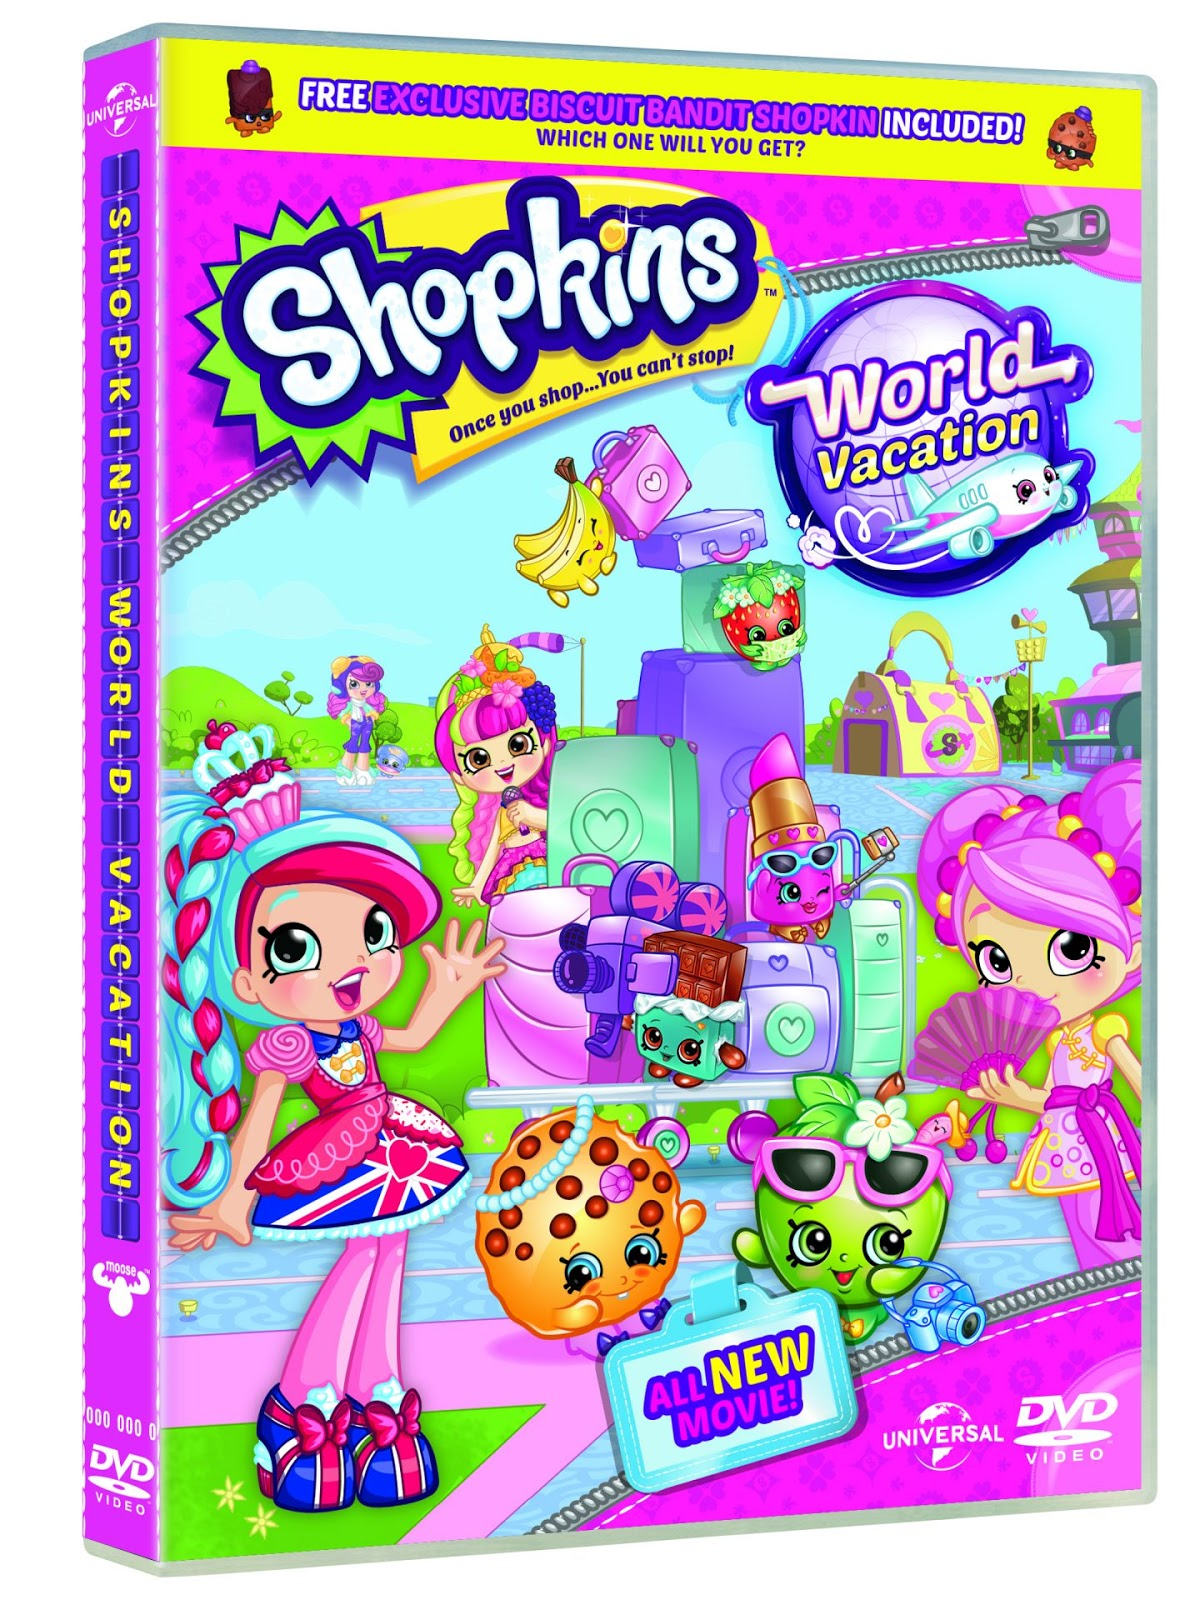 Eva Is At The Age Where She Loves Collectable Toys So Shopkins Are Right Up Her Street Currently Has A Few But Shes Hoping Santa Will Bring Some